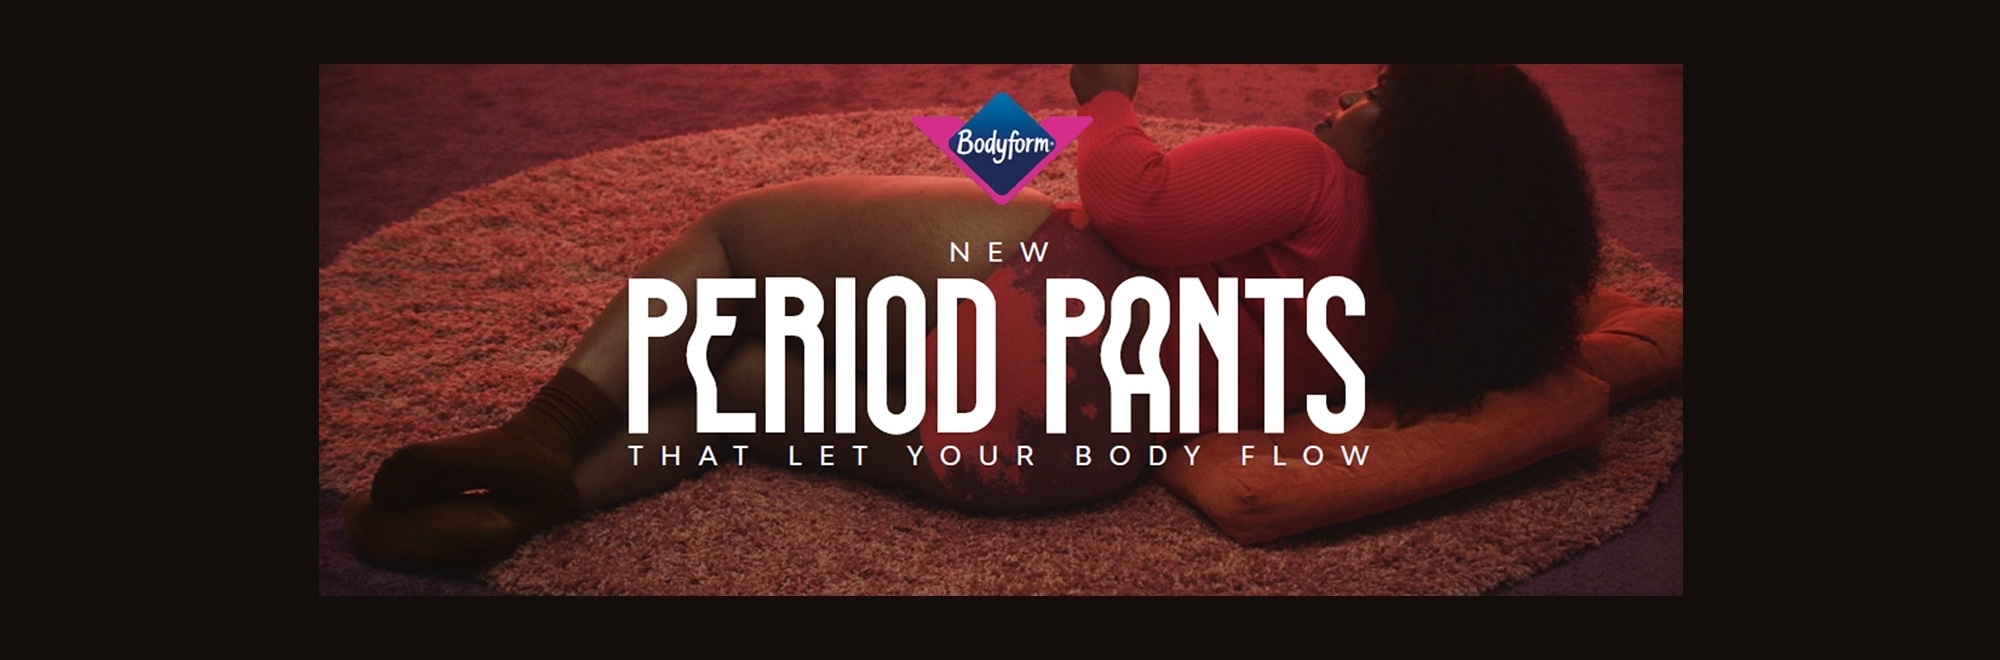 Bodyform launches new period pants that #letyourbodyflow